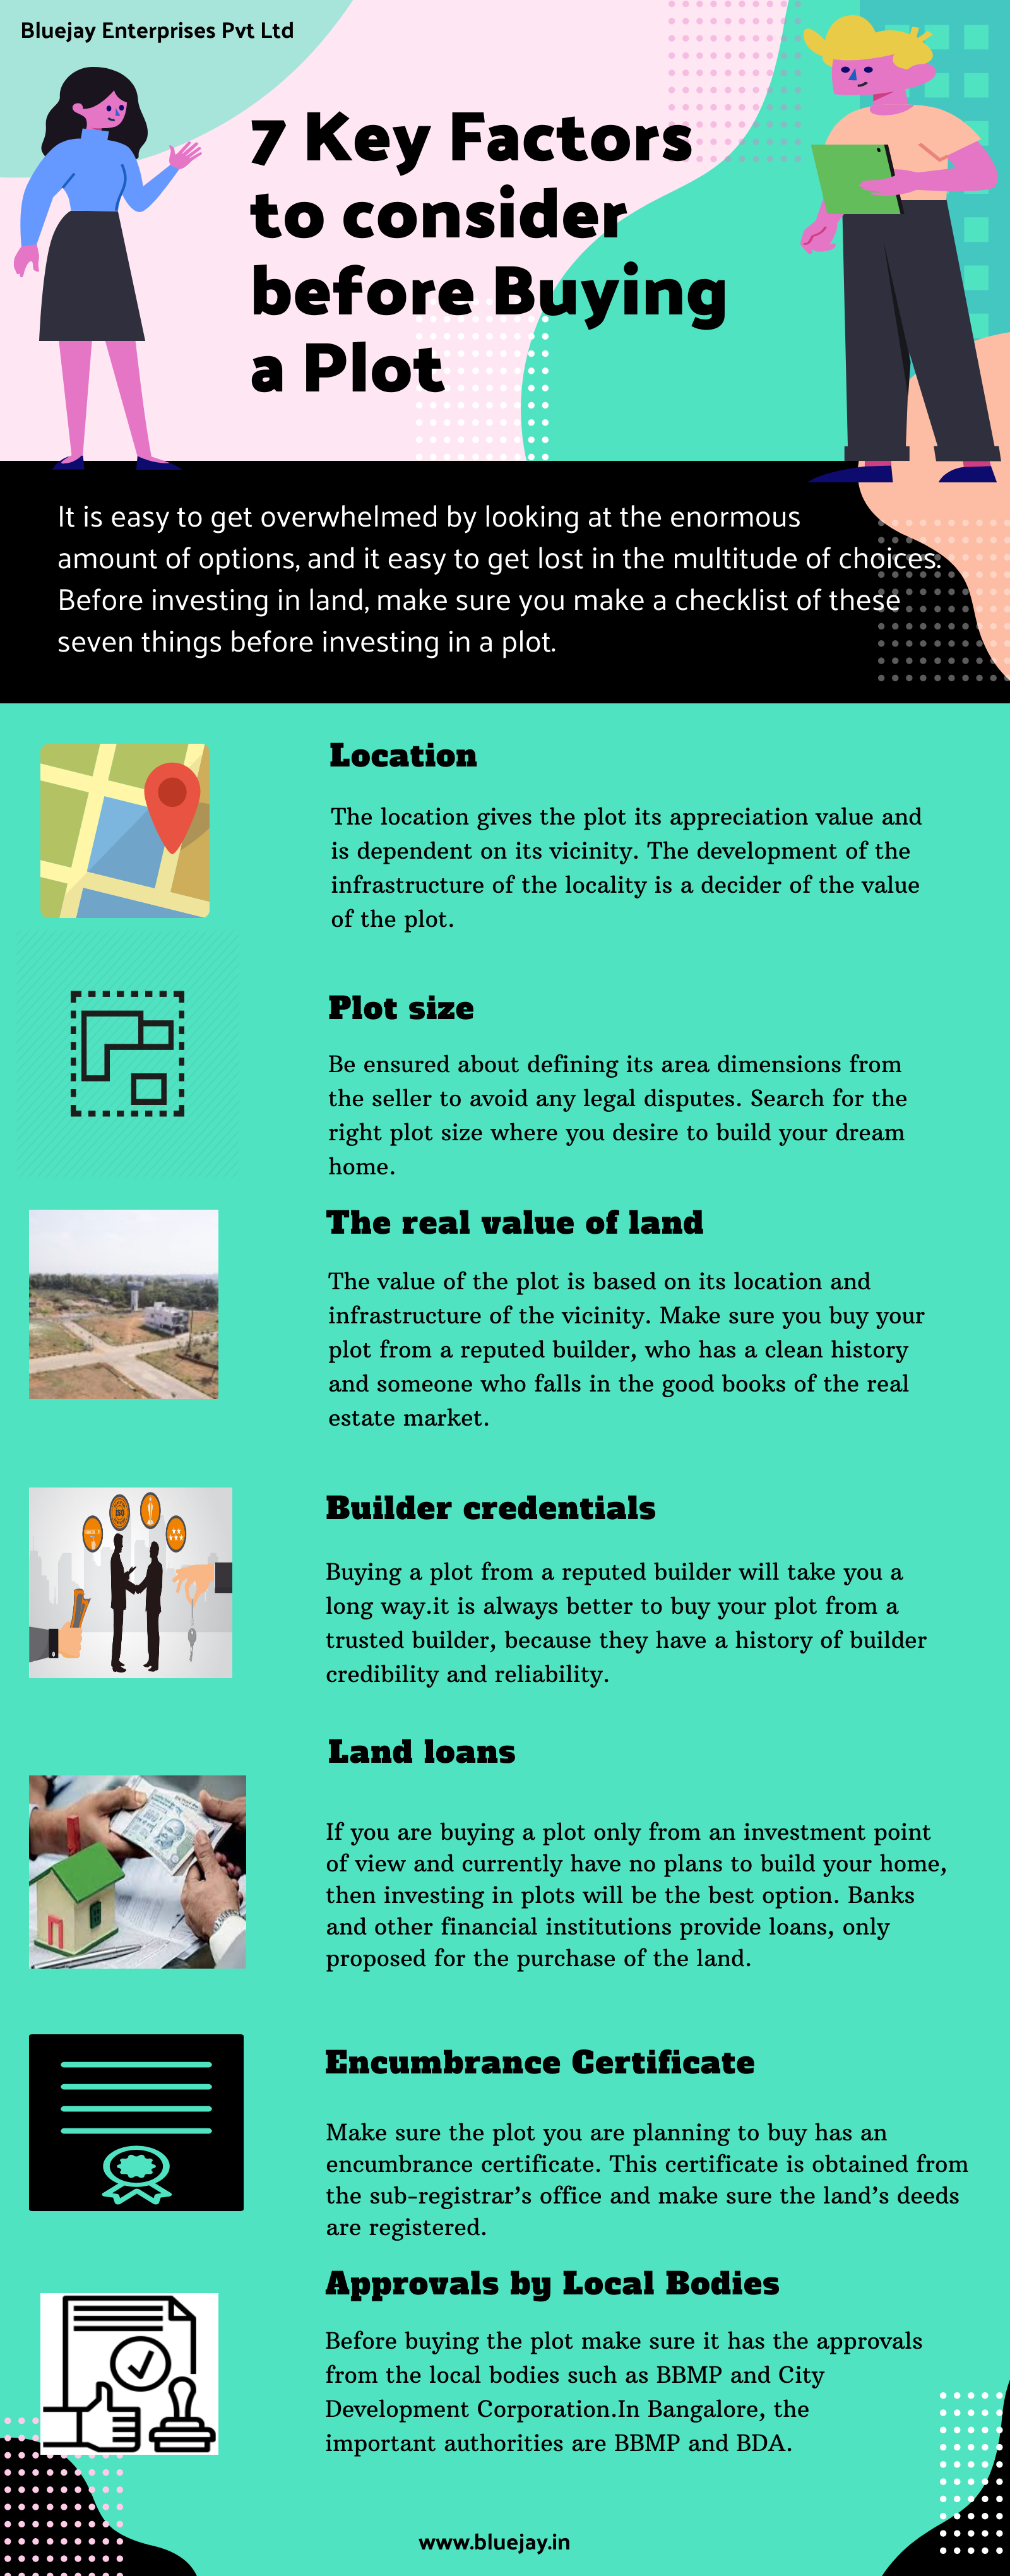 7 key factors to consider before buying a plot